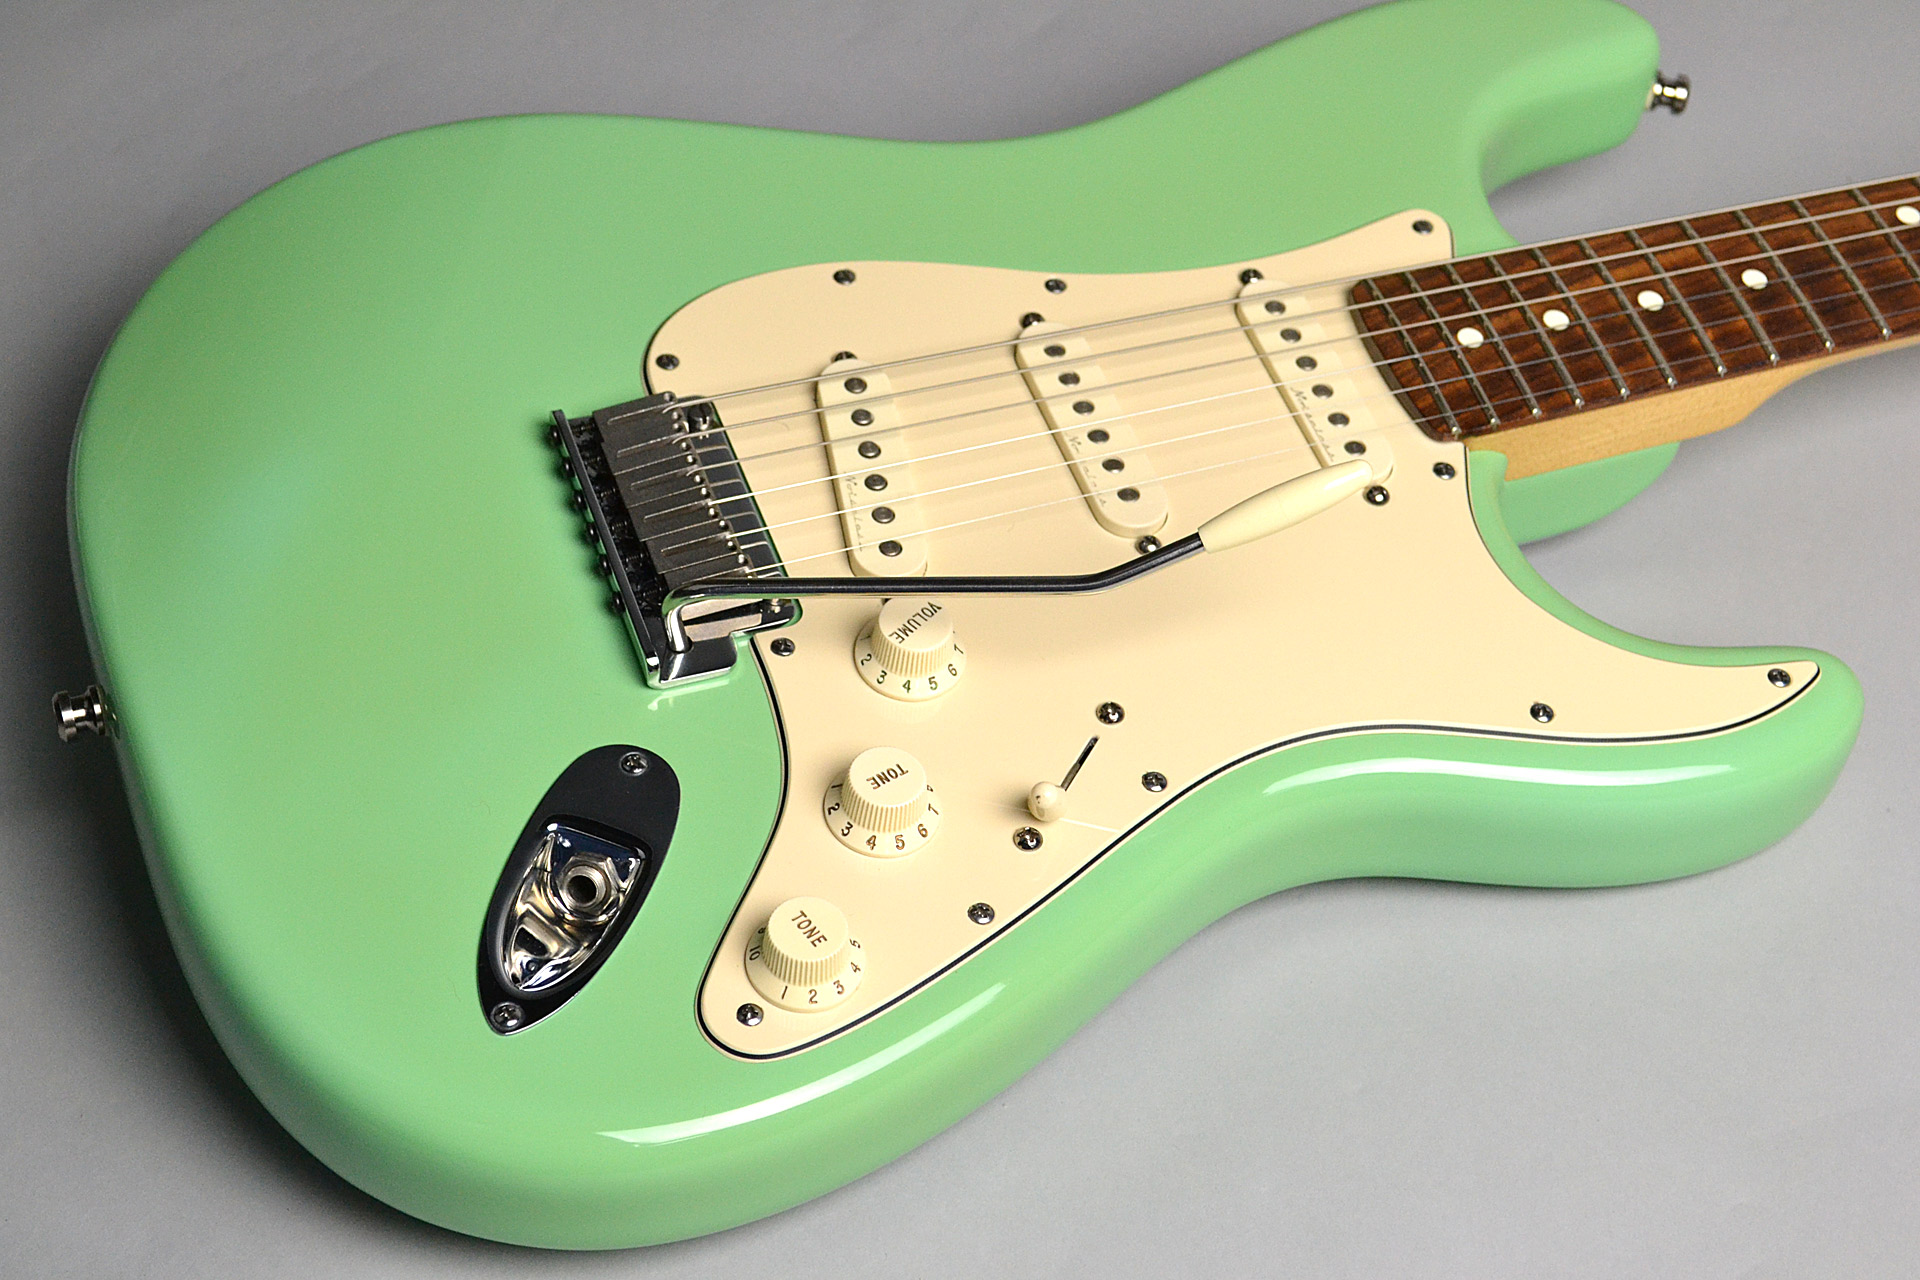 USED/ Jeff Beck Stratocaster Dual-coil Celamic Noise-less Pickupのボディトップ-アップ画像